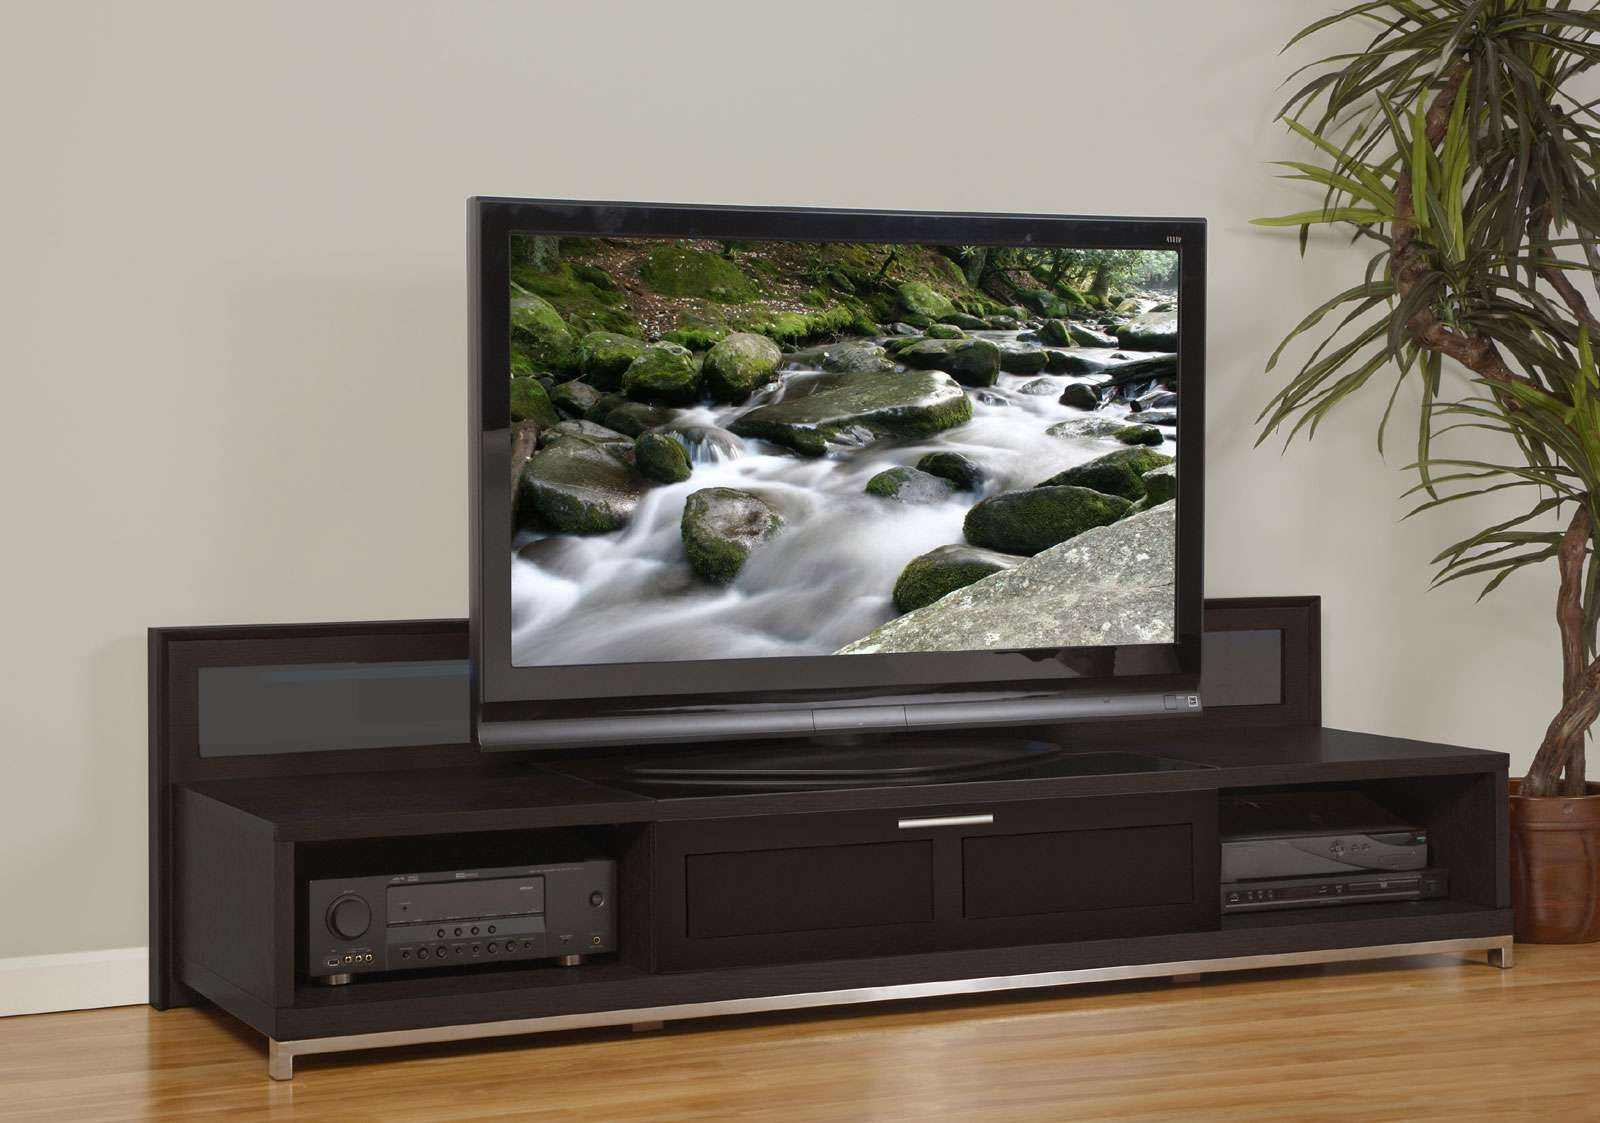 Mocca Stained Solid Wood Low Profile Tv Stand With Stainless Steel With Regard To Low Profile Contemporary Tv Stands (View 3 of 15)